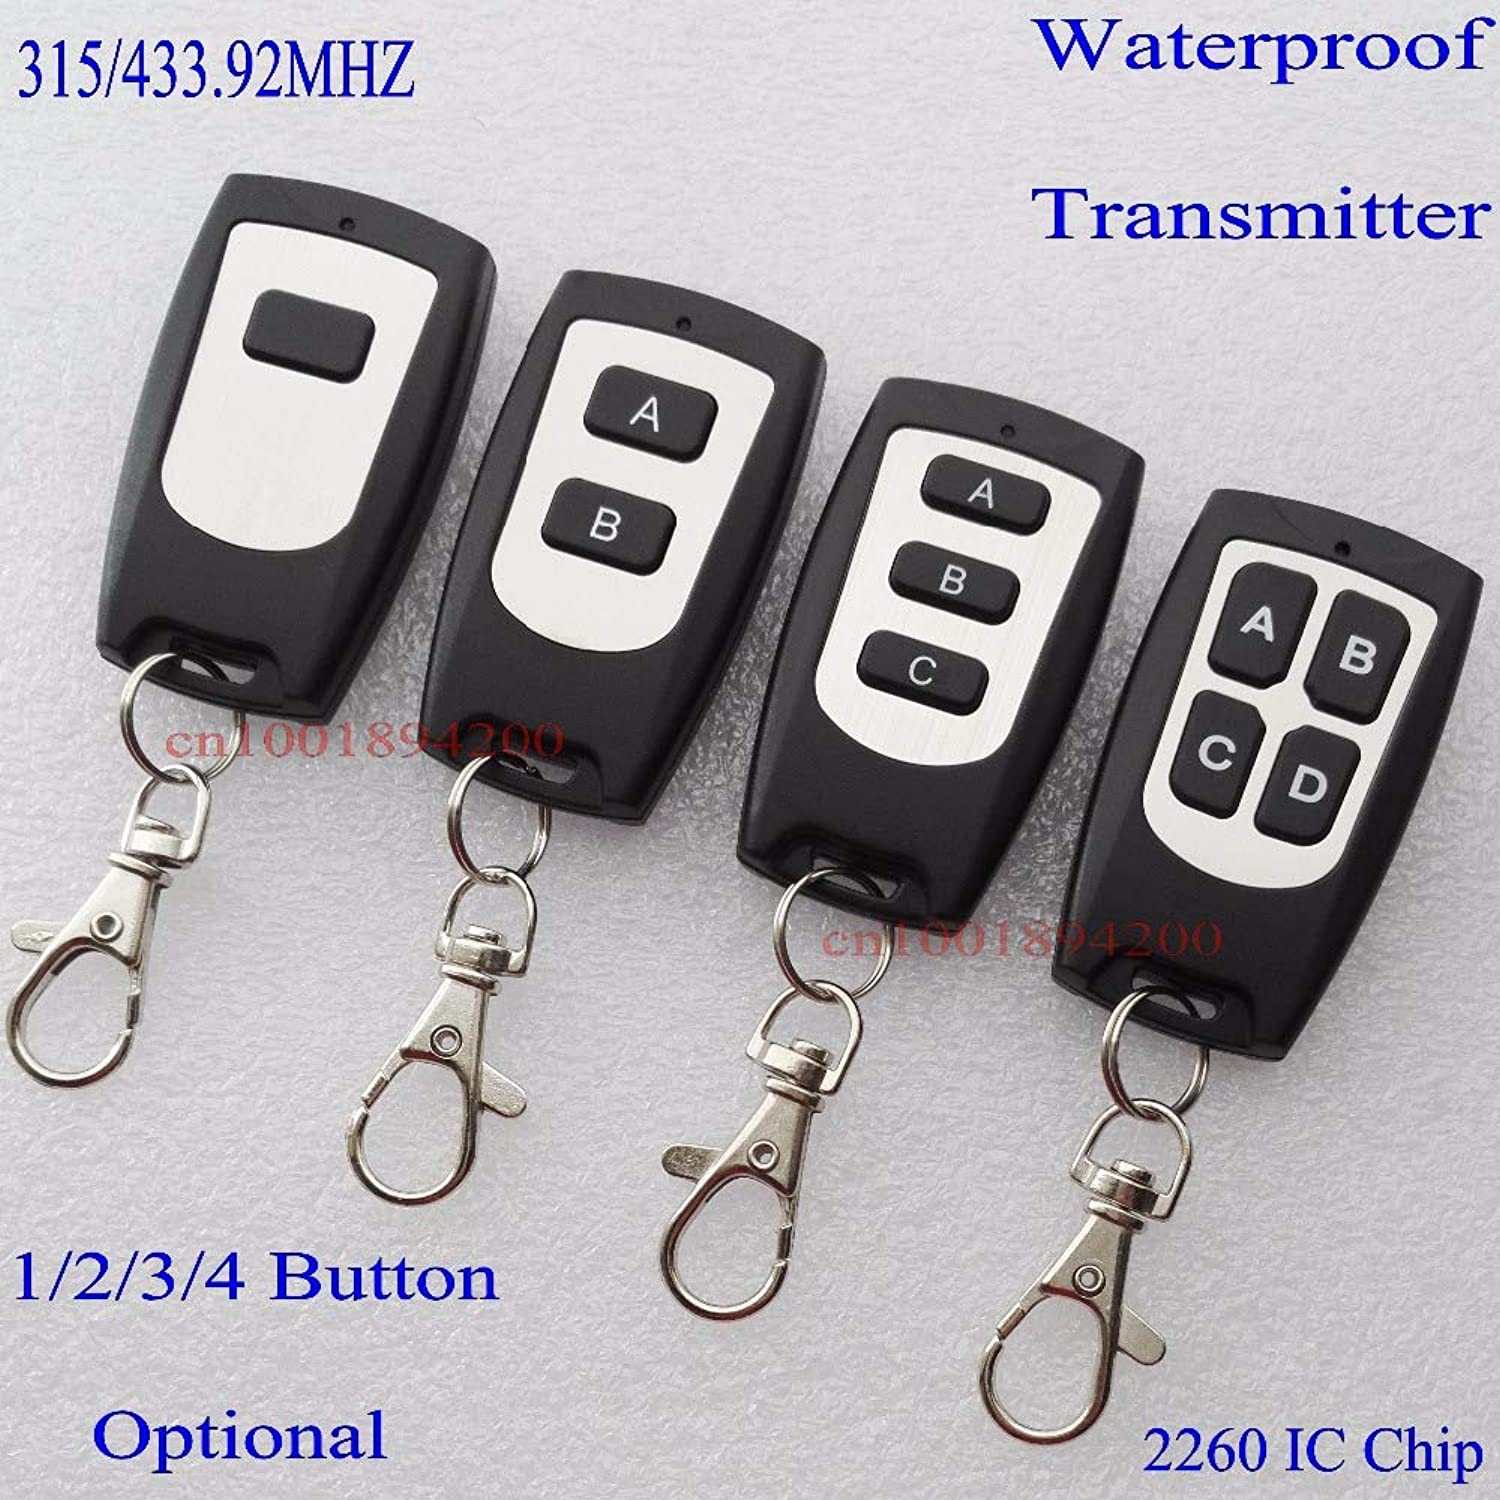 Wireless Remote Controller Transmitter 315MHZ 4.7M IC PT2260 WaterProof 14 Button UltraThin Fittings for Professional